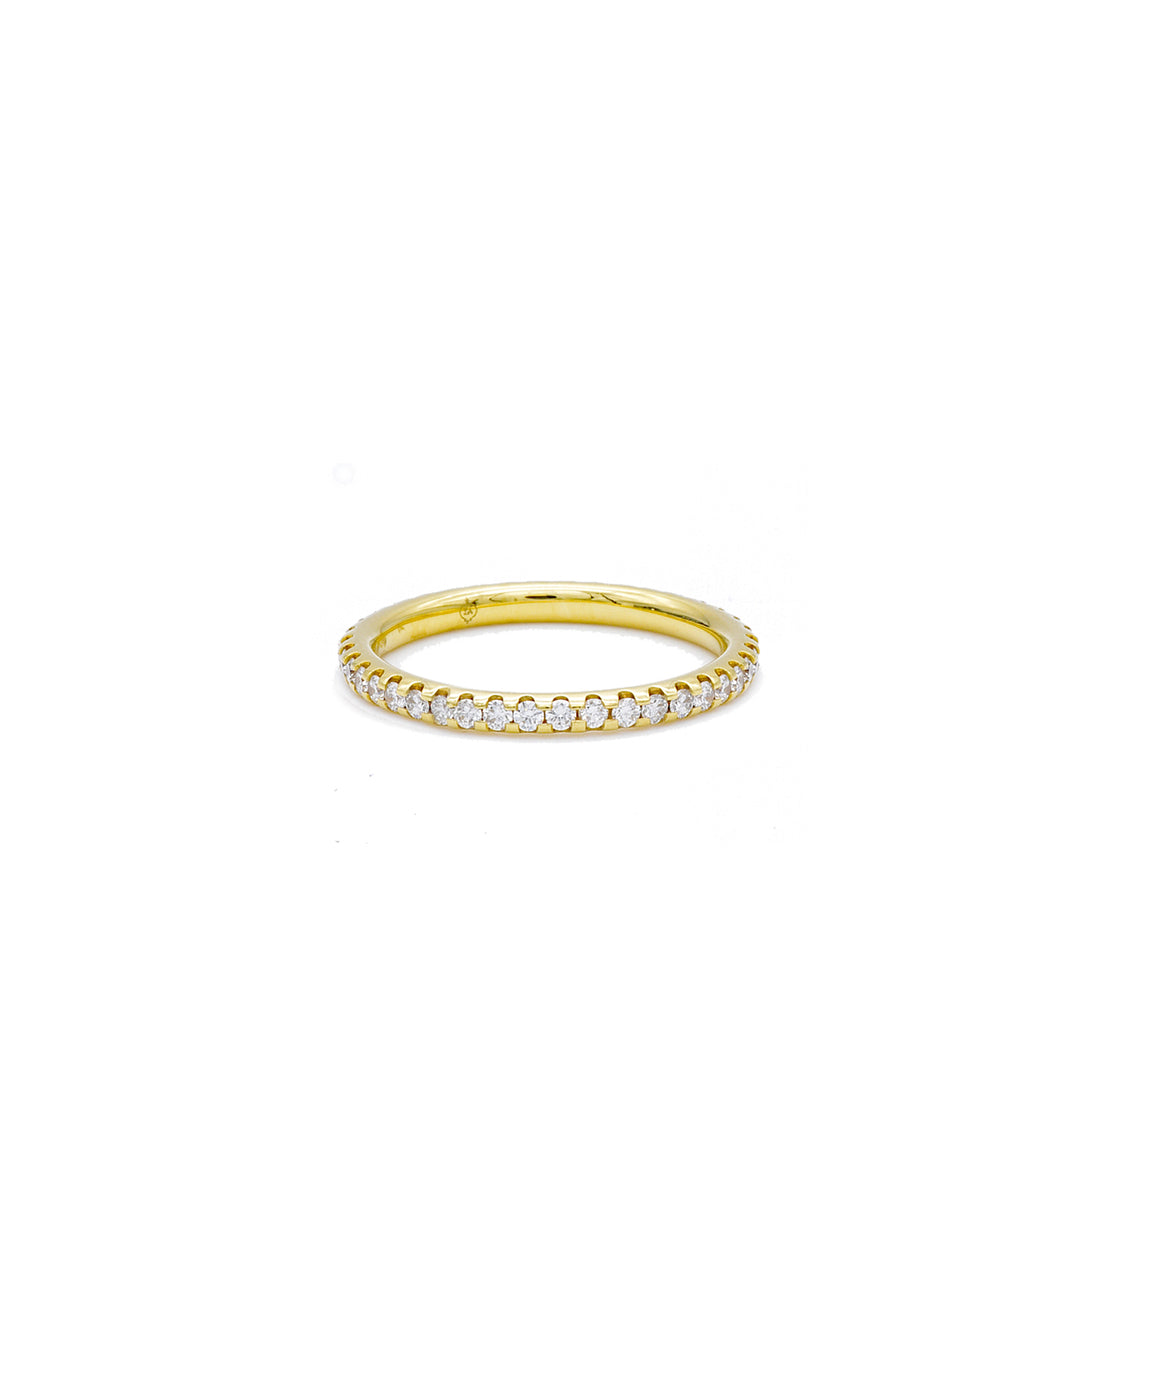 Yellow Gold Eternity Band - Lesley Ann Jewels